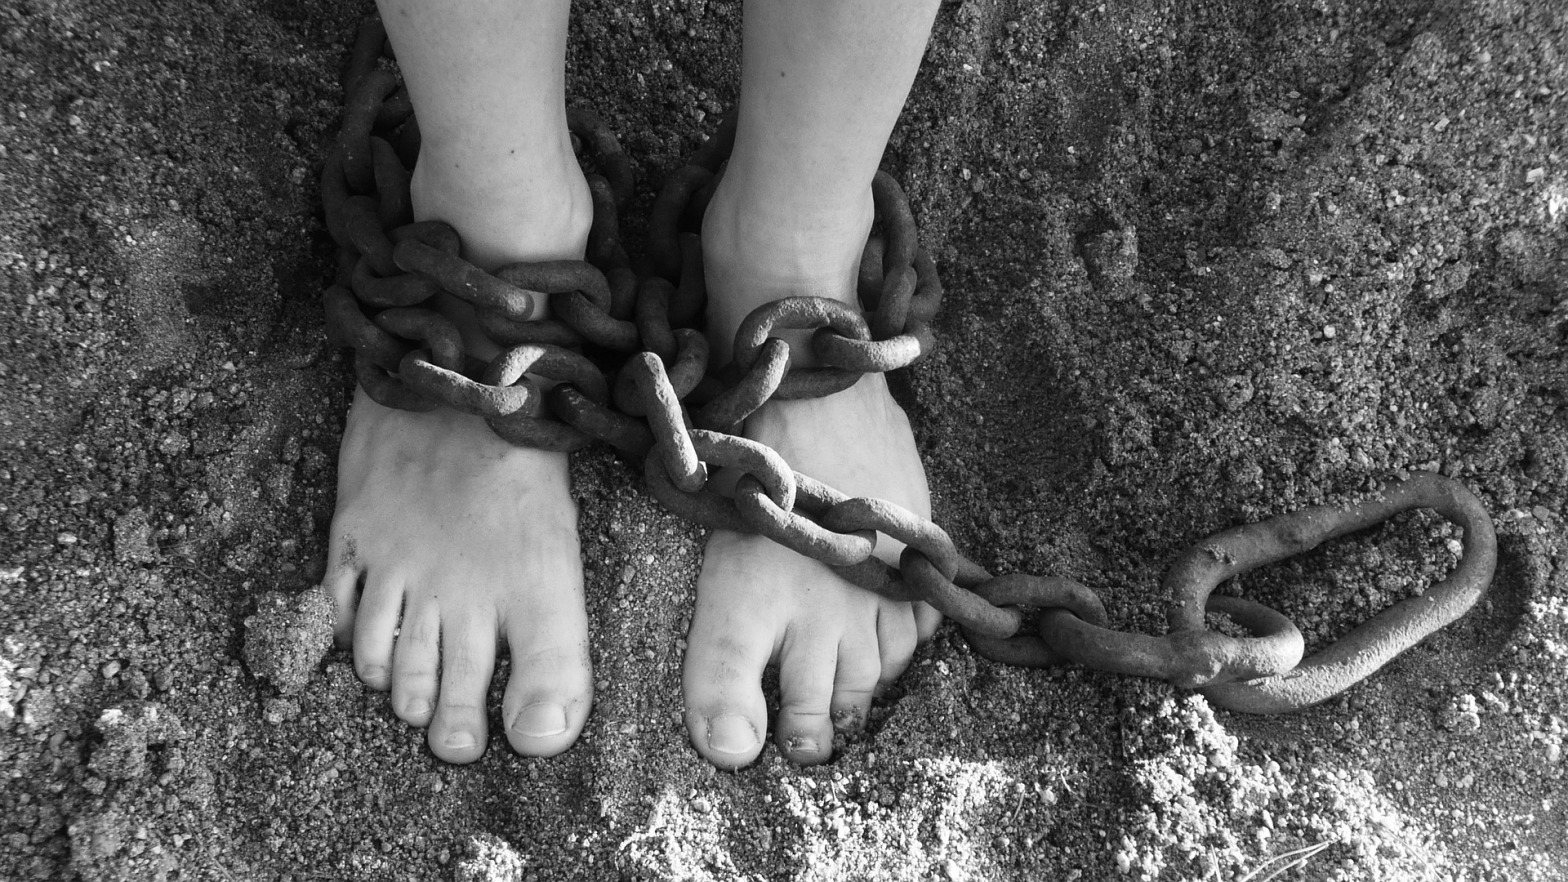 https://pixabay.com/en/chains-feet-sand-bondage-prison-19176/